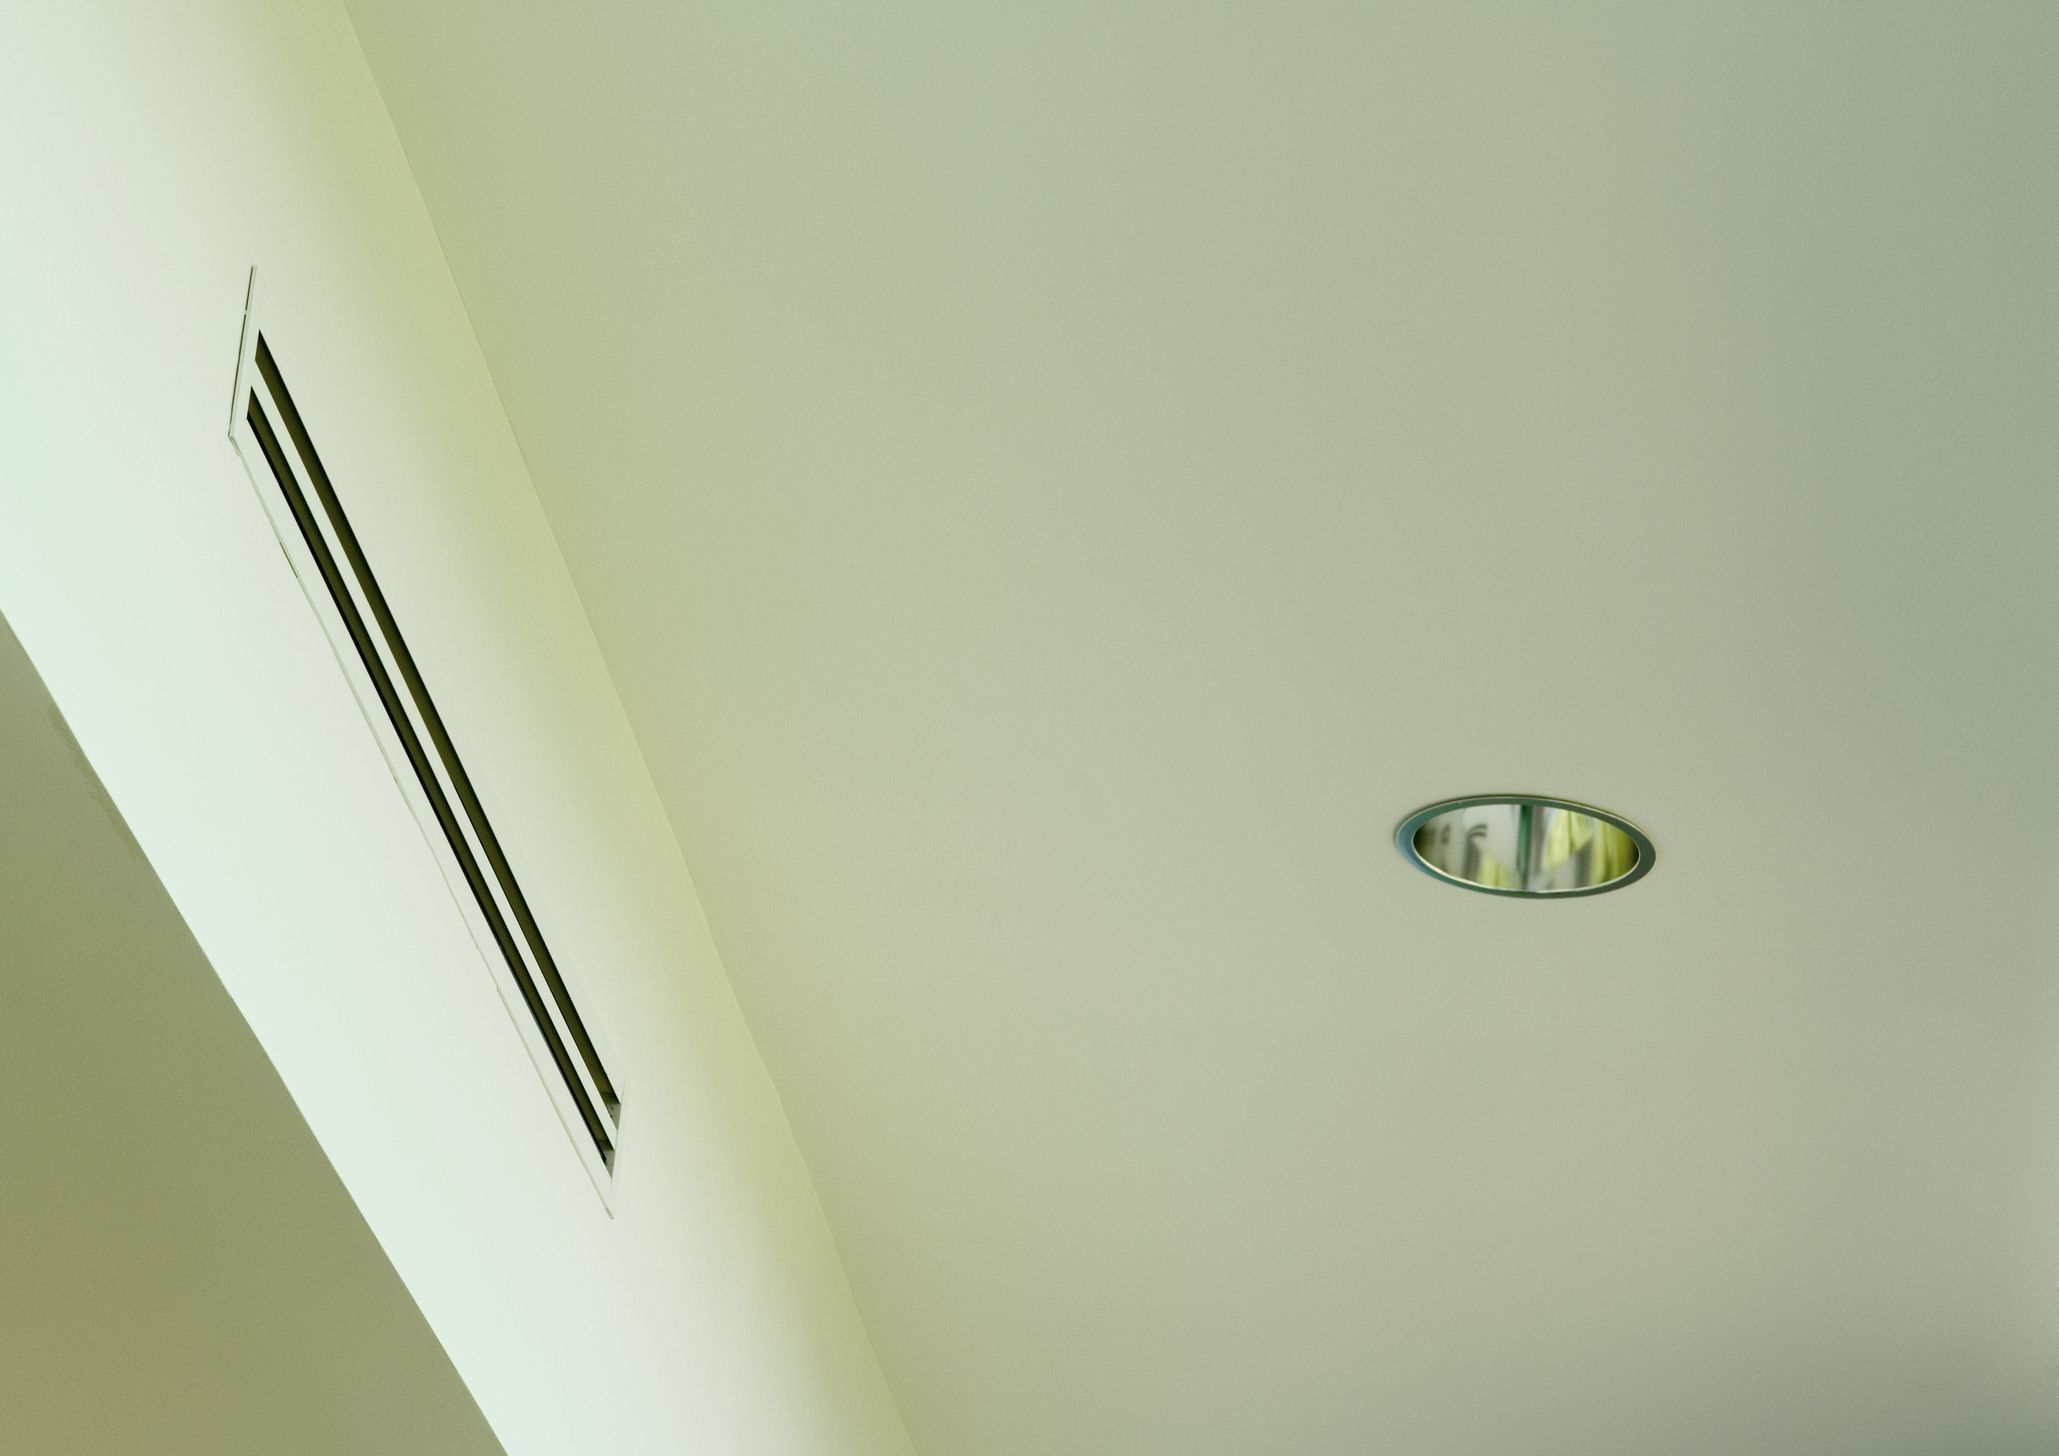 Air duct and ceiling light